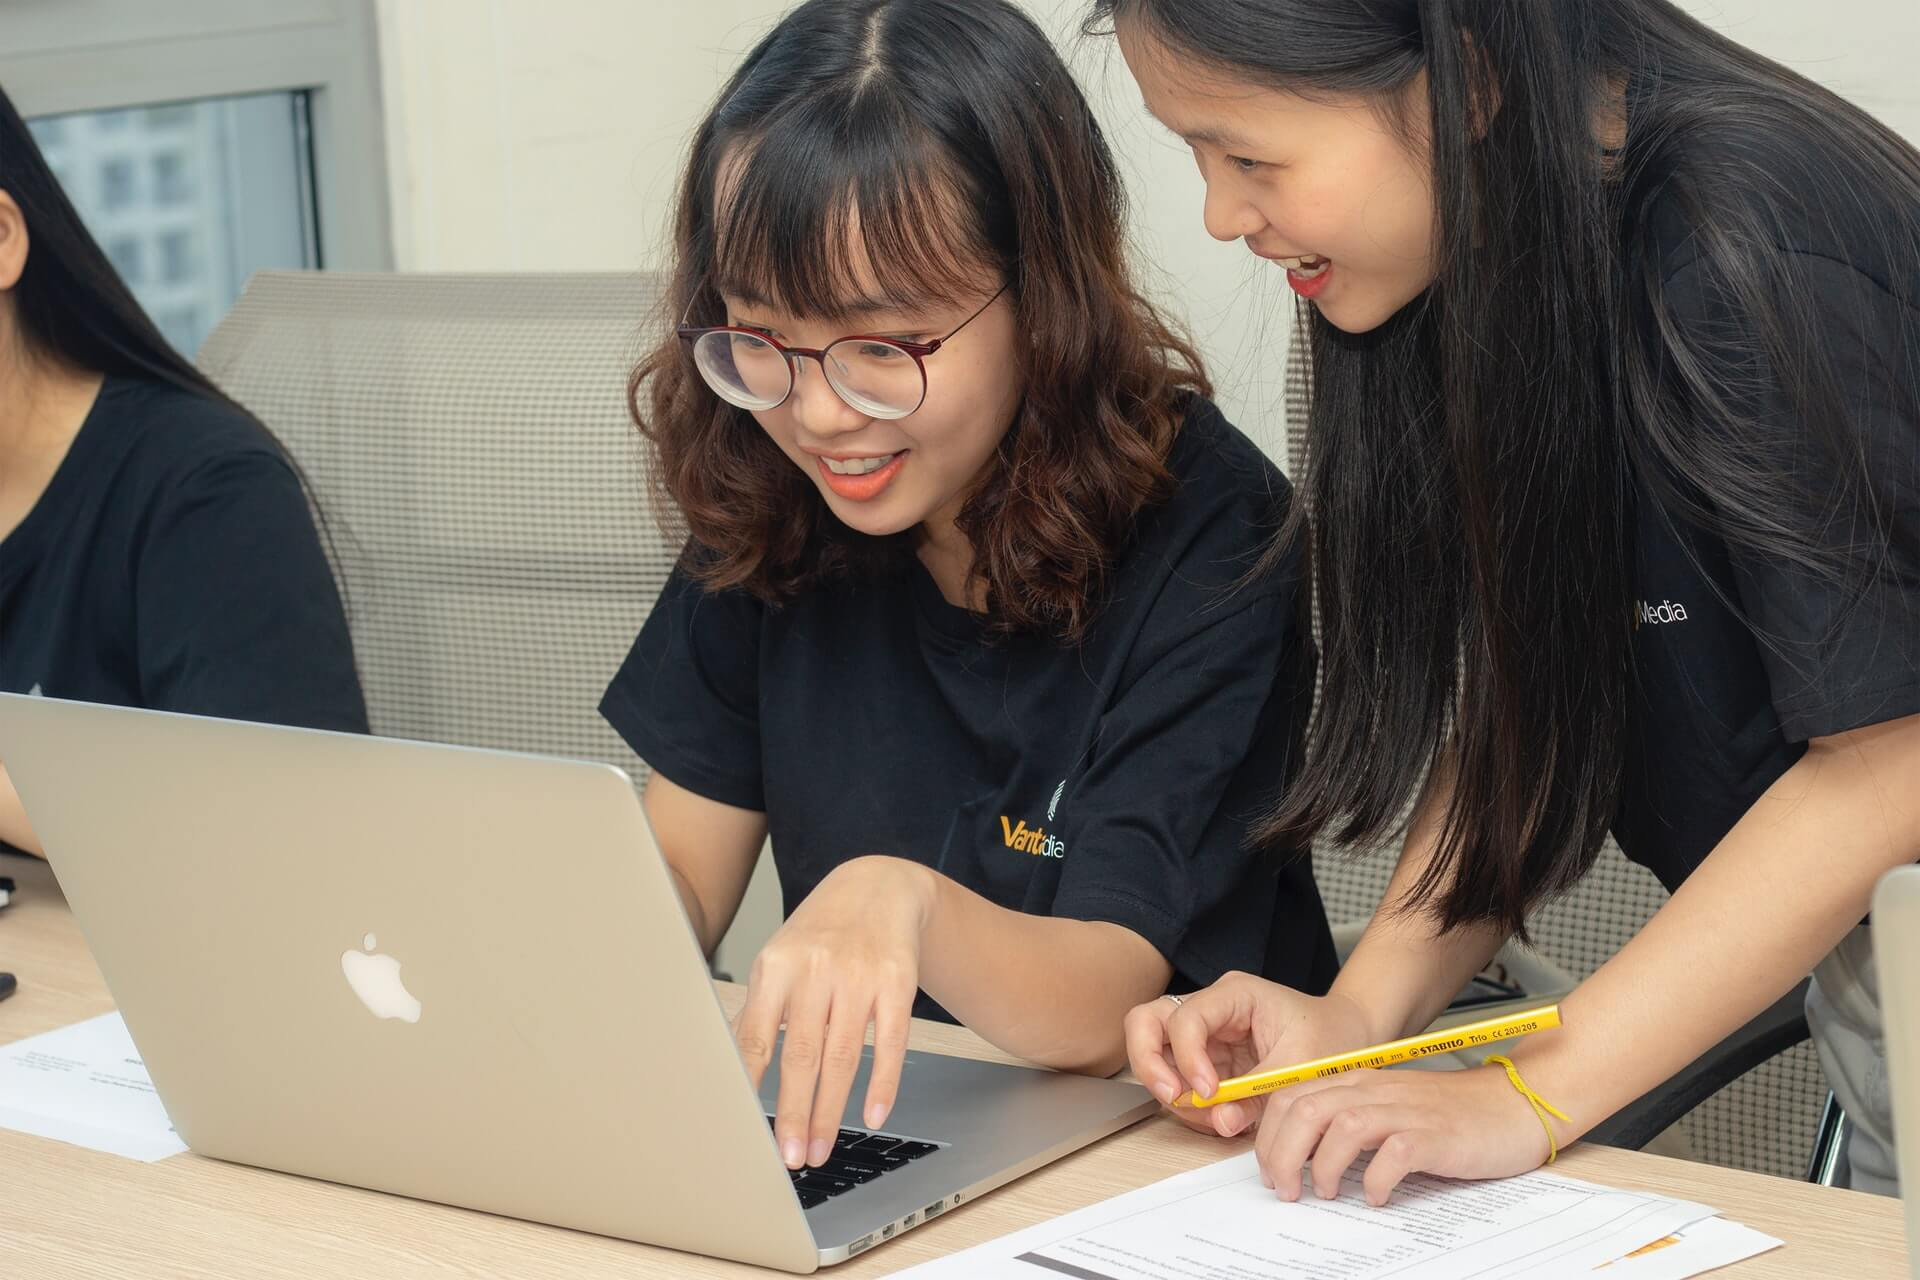 two girls working on laptop